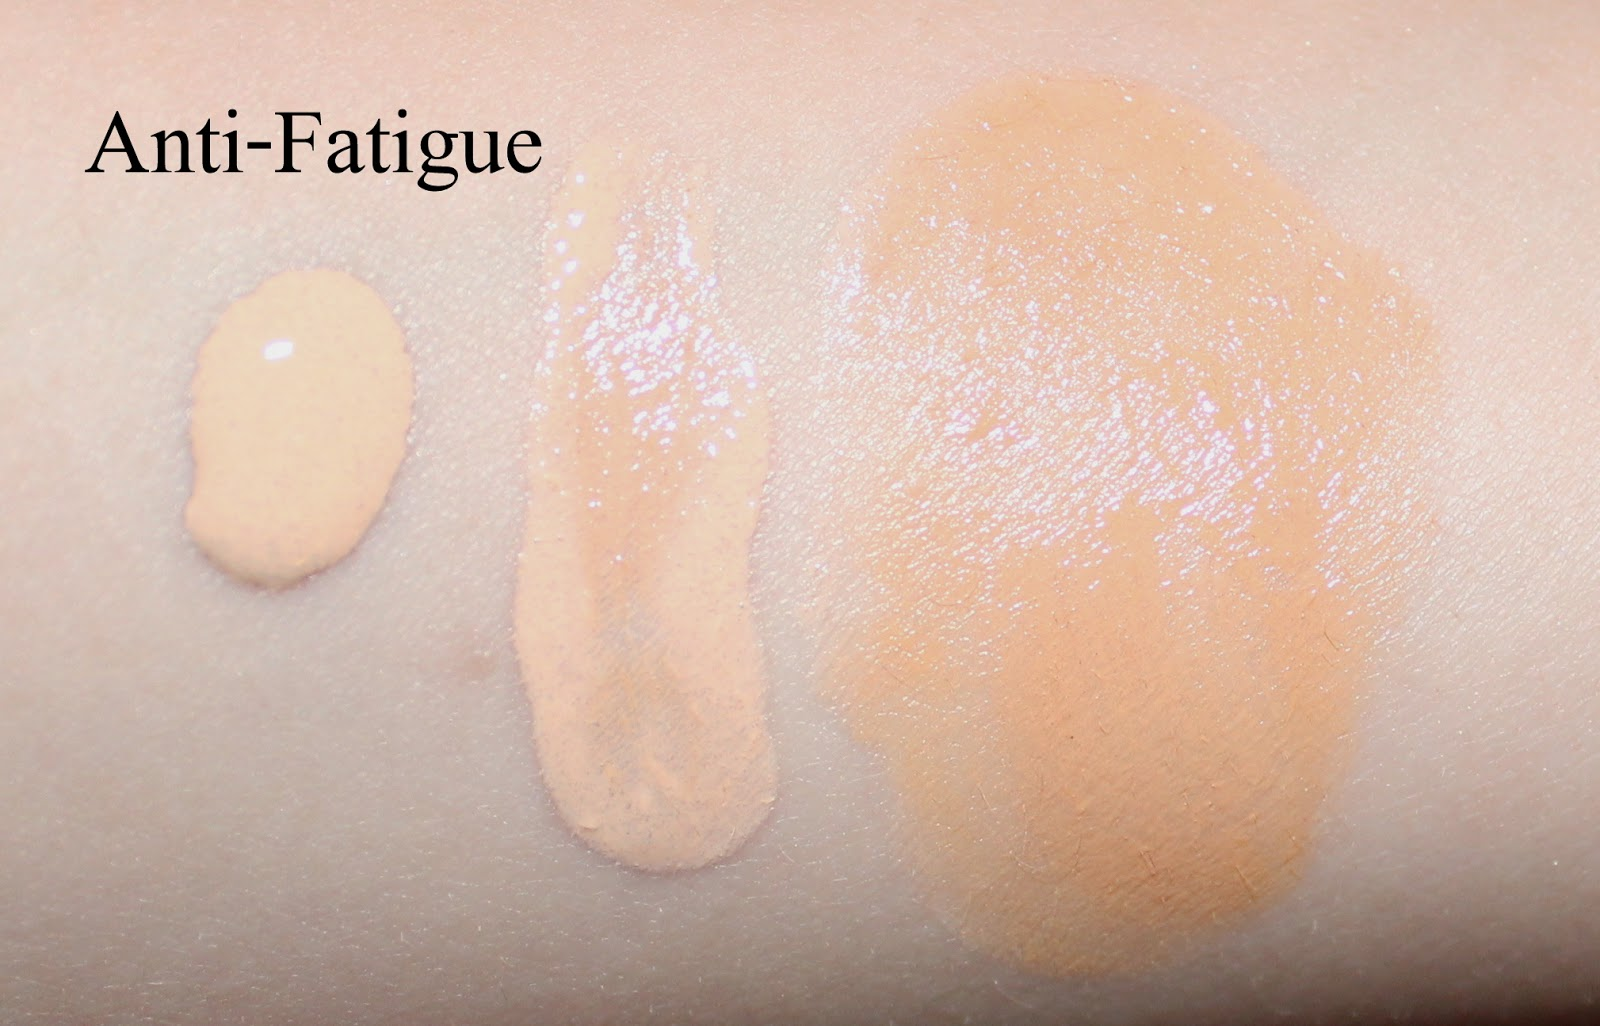 L'Oréal Magic Skin Beautifier BB Cream Anti-Fatigue Swatches